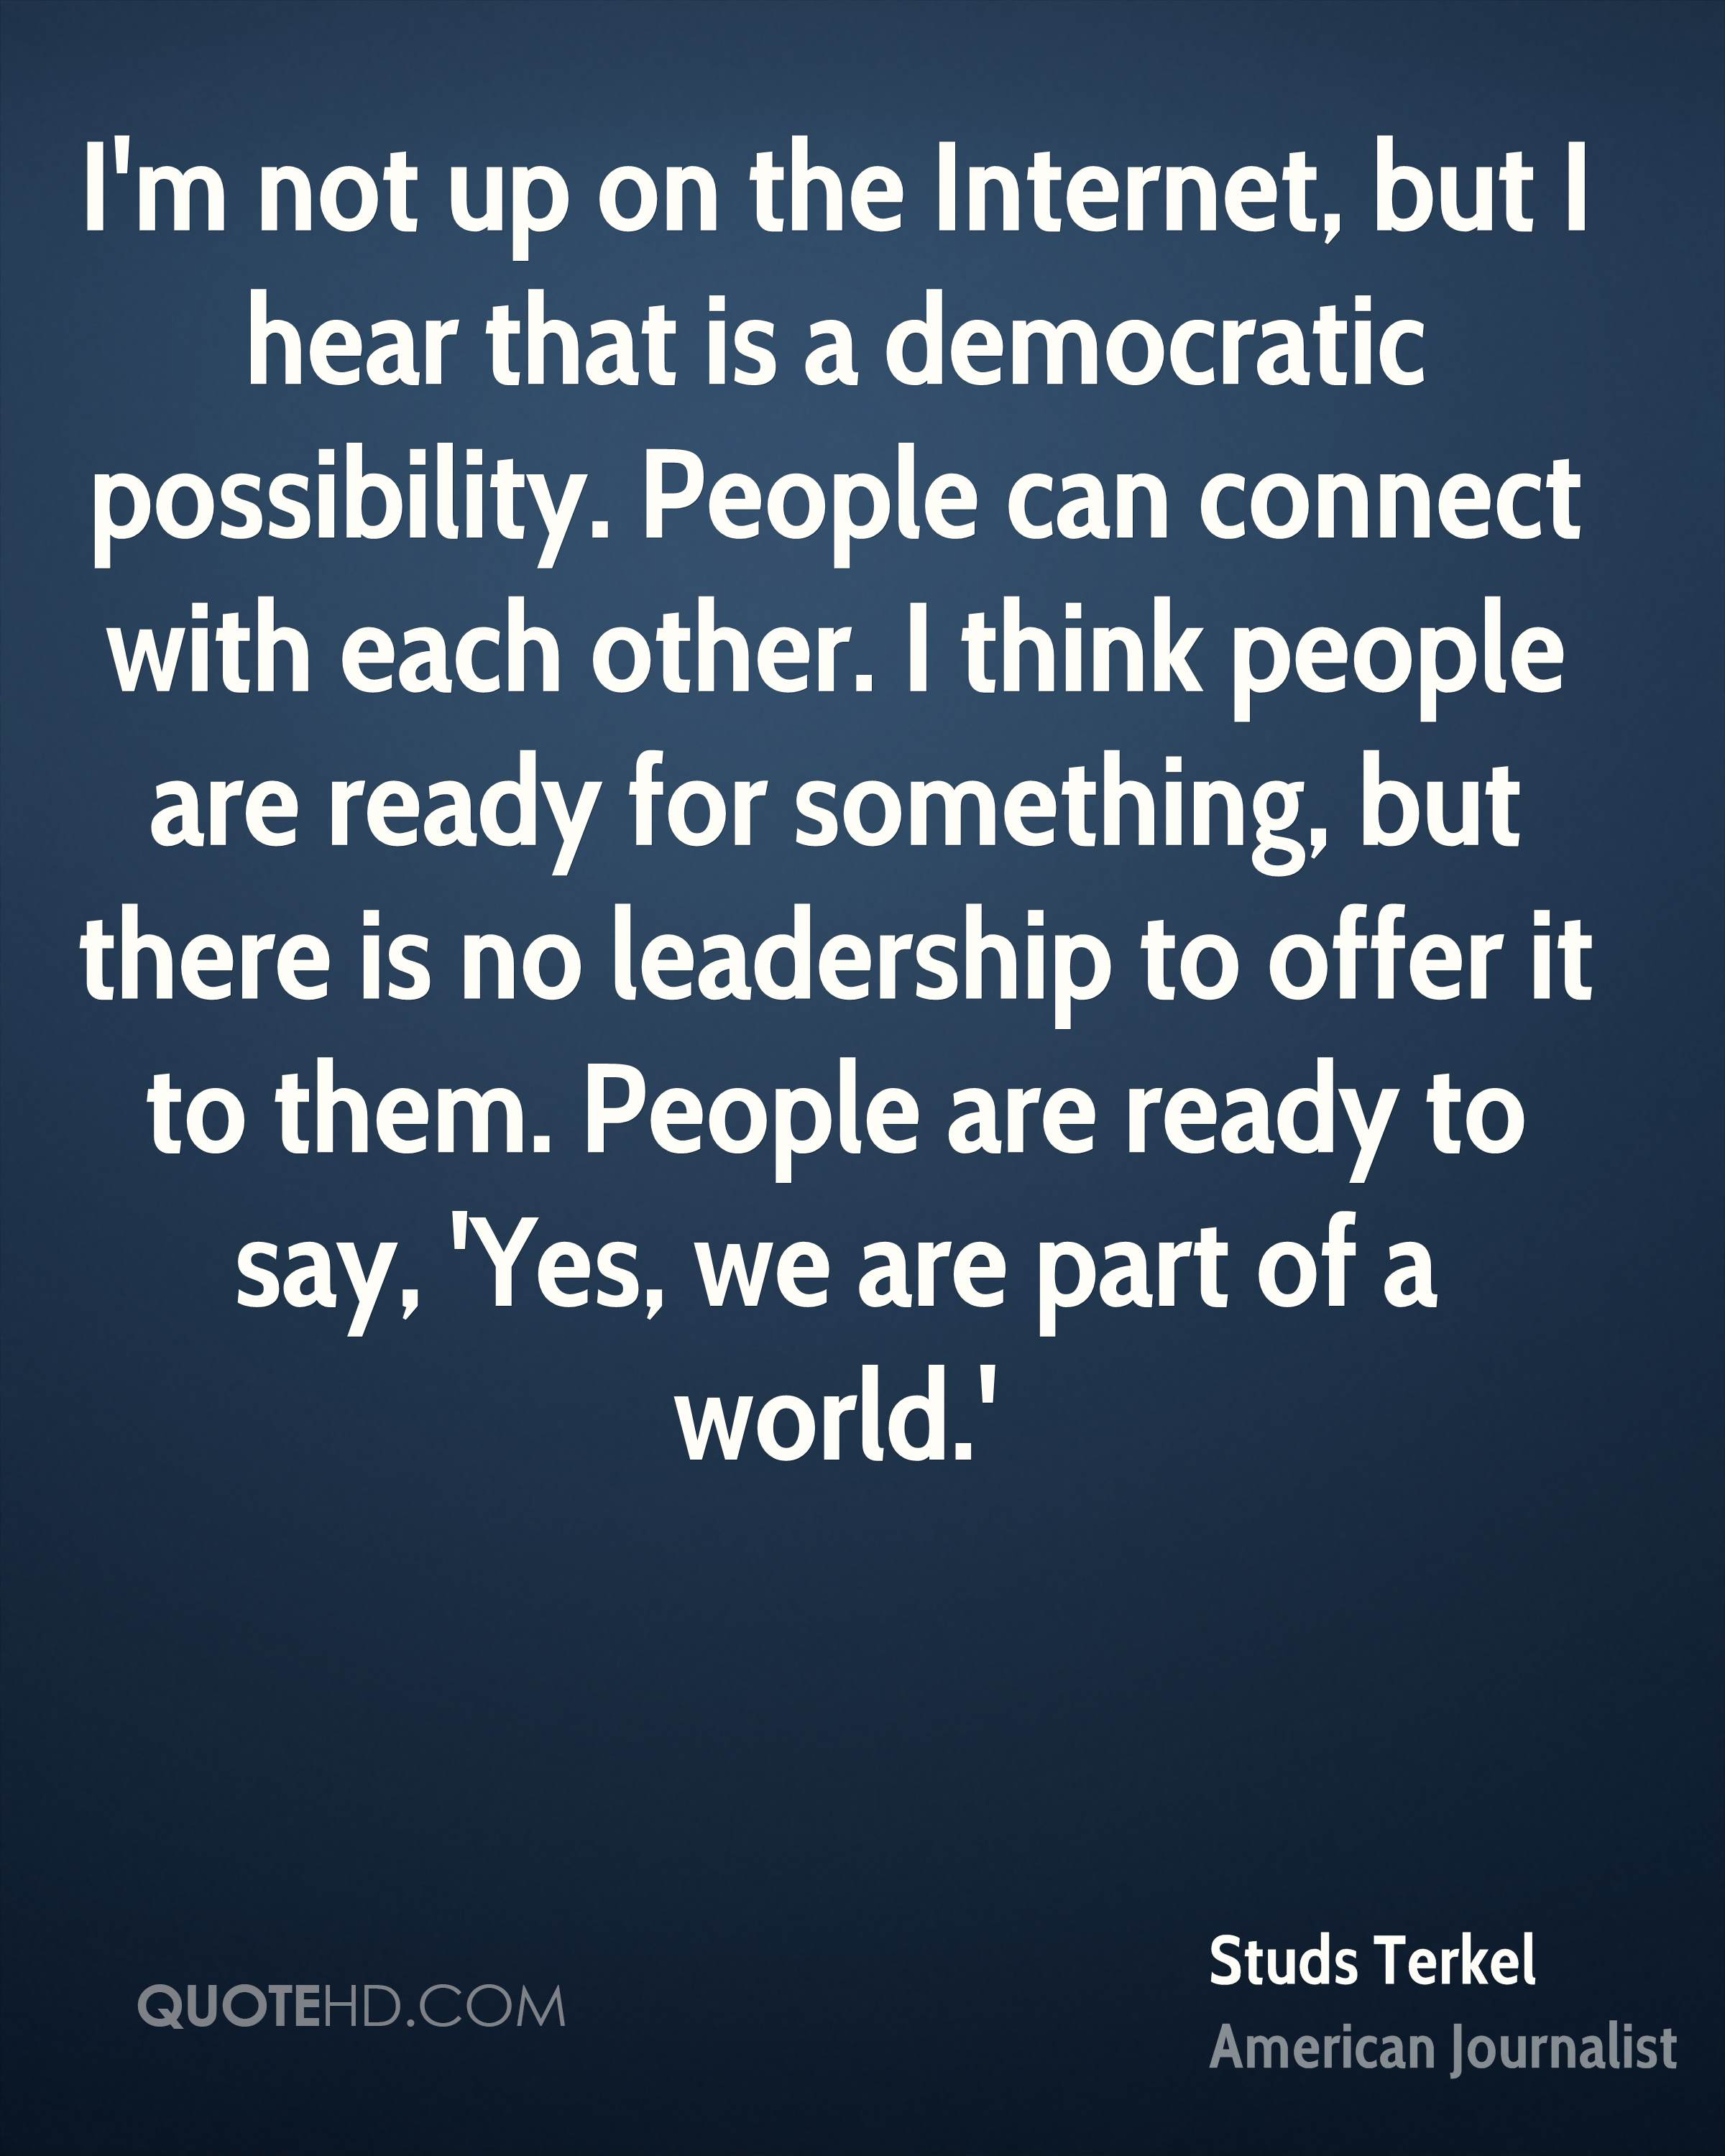 I'm not up on the Internet, but I hear that is a democratic possibility. People can connect with each other. I think people are ready for something, but there is no leadership to offer it to them. People are ready to say, 'Yes, we are part of a world.'